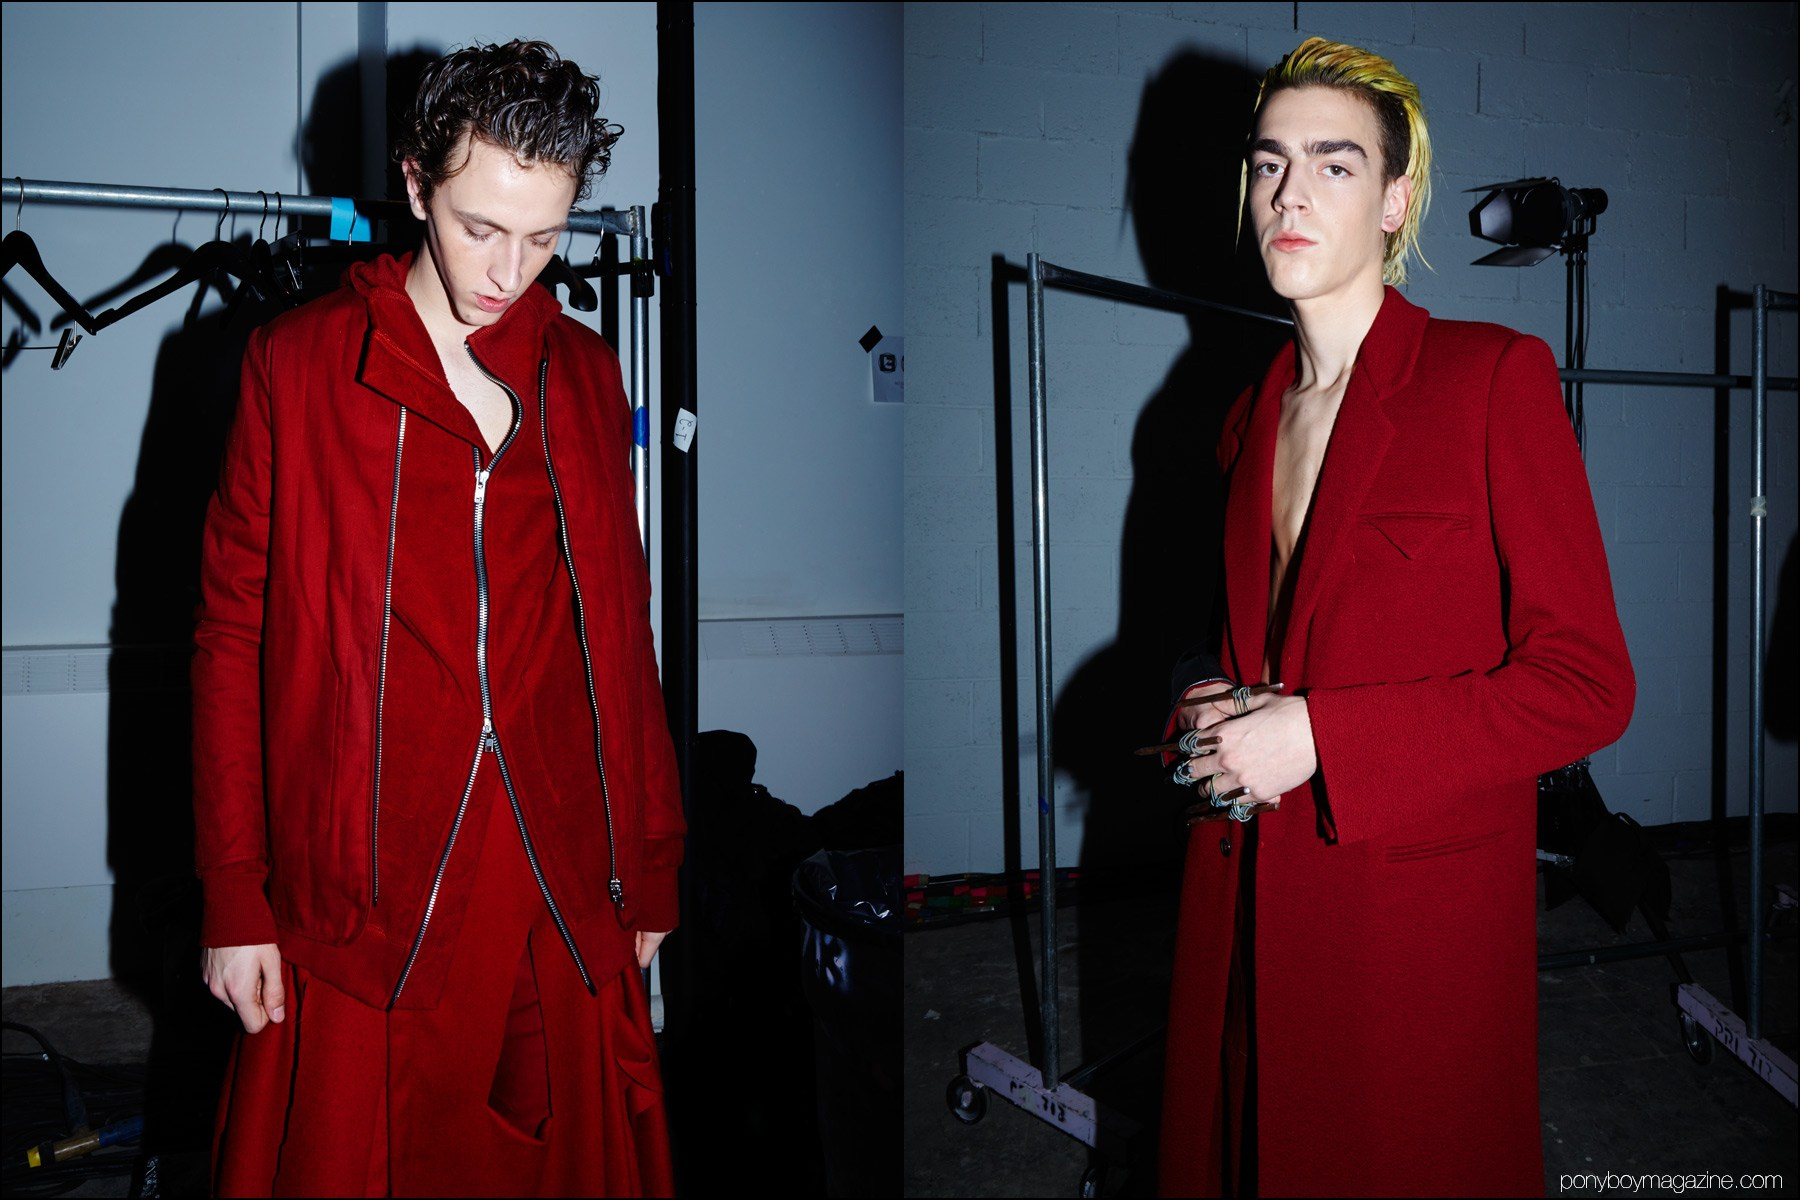 Male models Niels Trispel and Sean Kitchen photographed backstage in Siki Im + Den Im F/W16 menswear. Photography by Alexander Thompson for Ponyboy magazine NY.